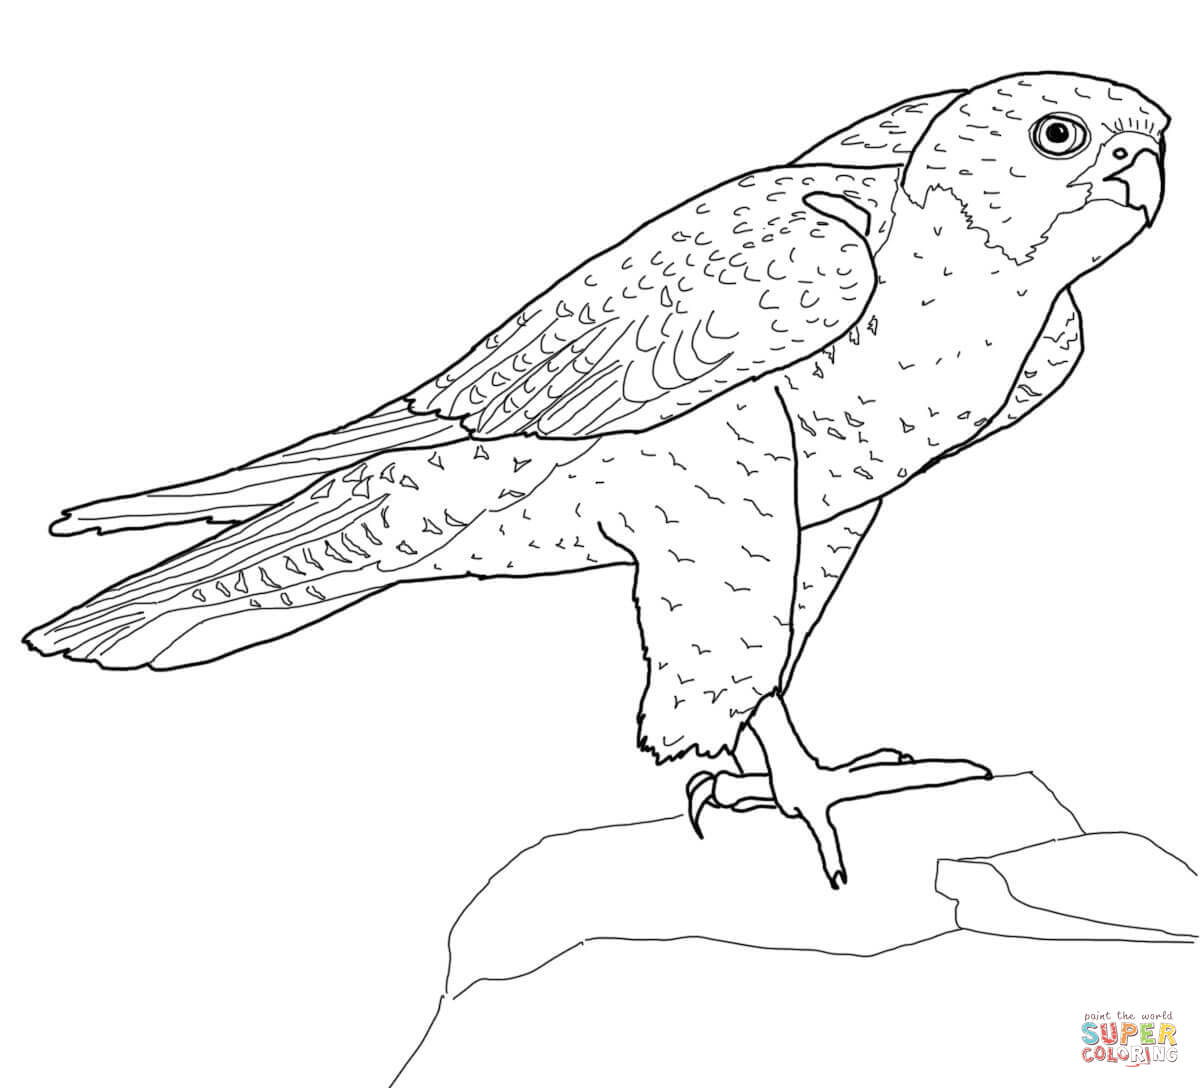 Peregrine Falcon clipart coloring To the Coloring Click Peregrine